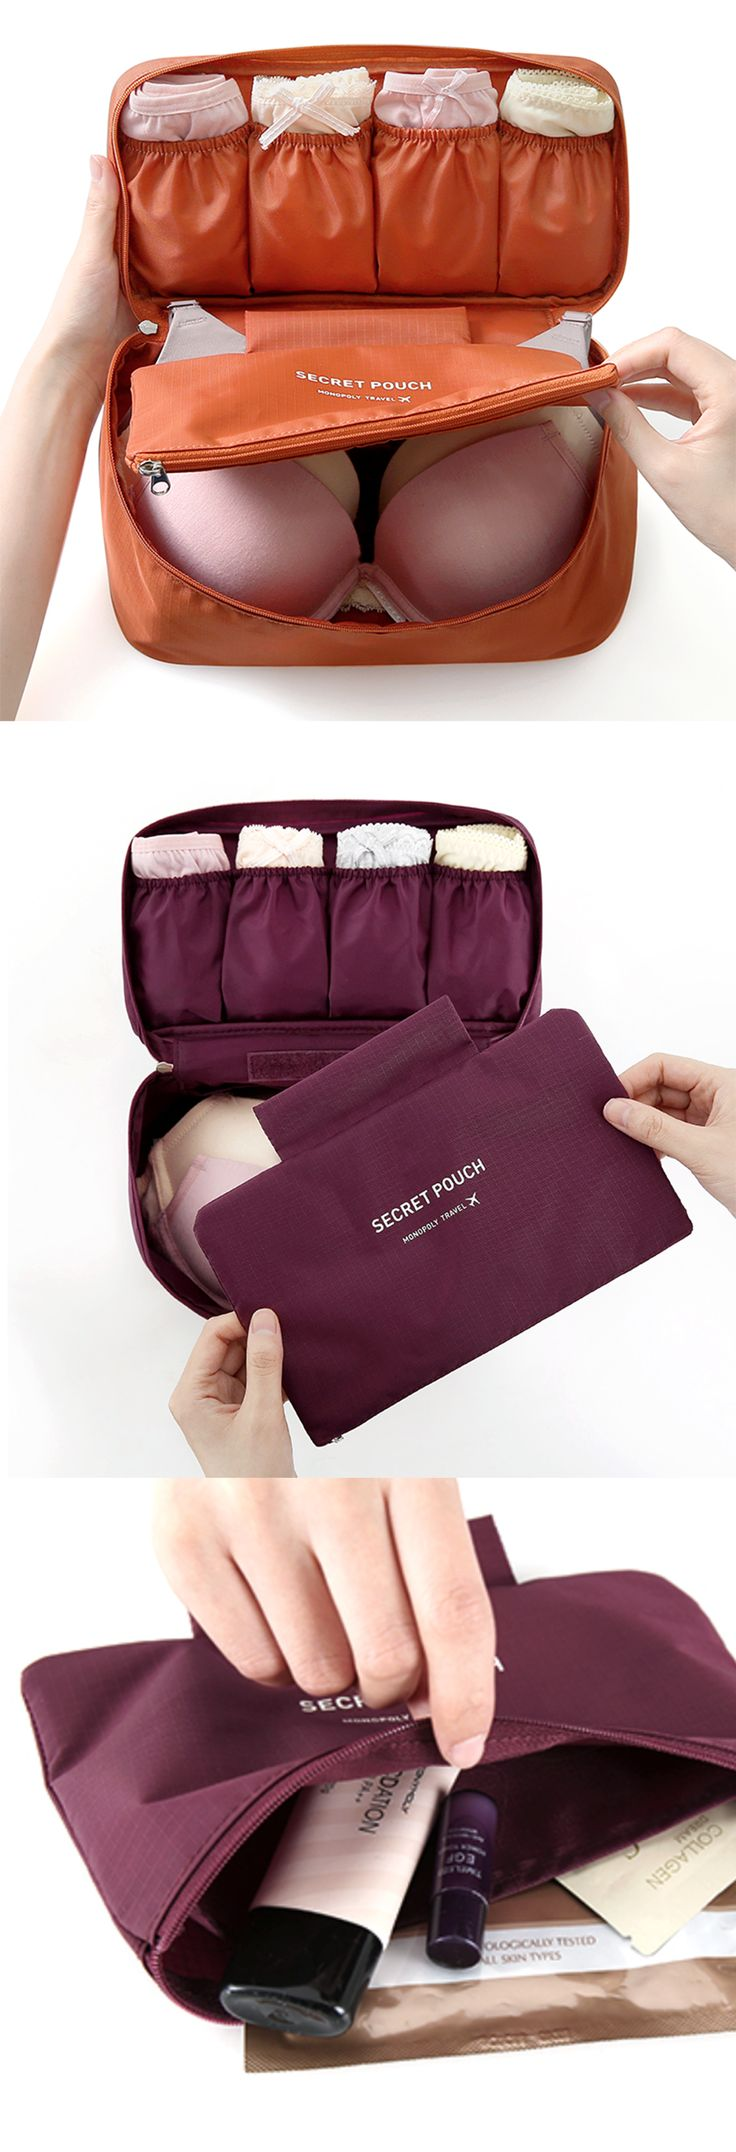 Probably one of the most ingenious products I've ever seen: an undies pouch! Yes, you read that right! This pouch is designed to store 3-6 bras and 4-6 undies within the compartments. There's a detachable zipper pouch to store undies waiting to be thrown into the laundry. There's also a pocket on the side for other lady essentials too. This is also super handy for traveling as I can pack all my essentials in the pouch and just toss it into the luggage. This is available at mochithings.com!